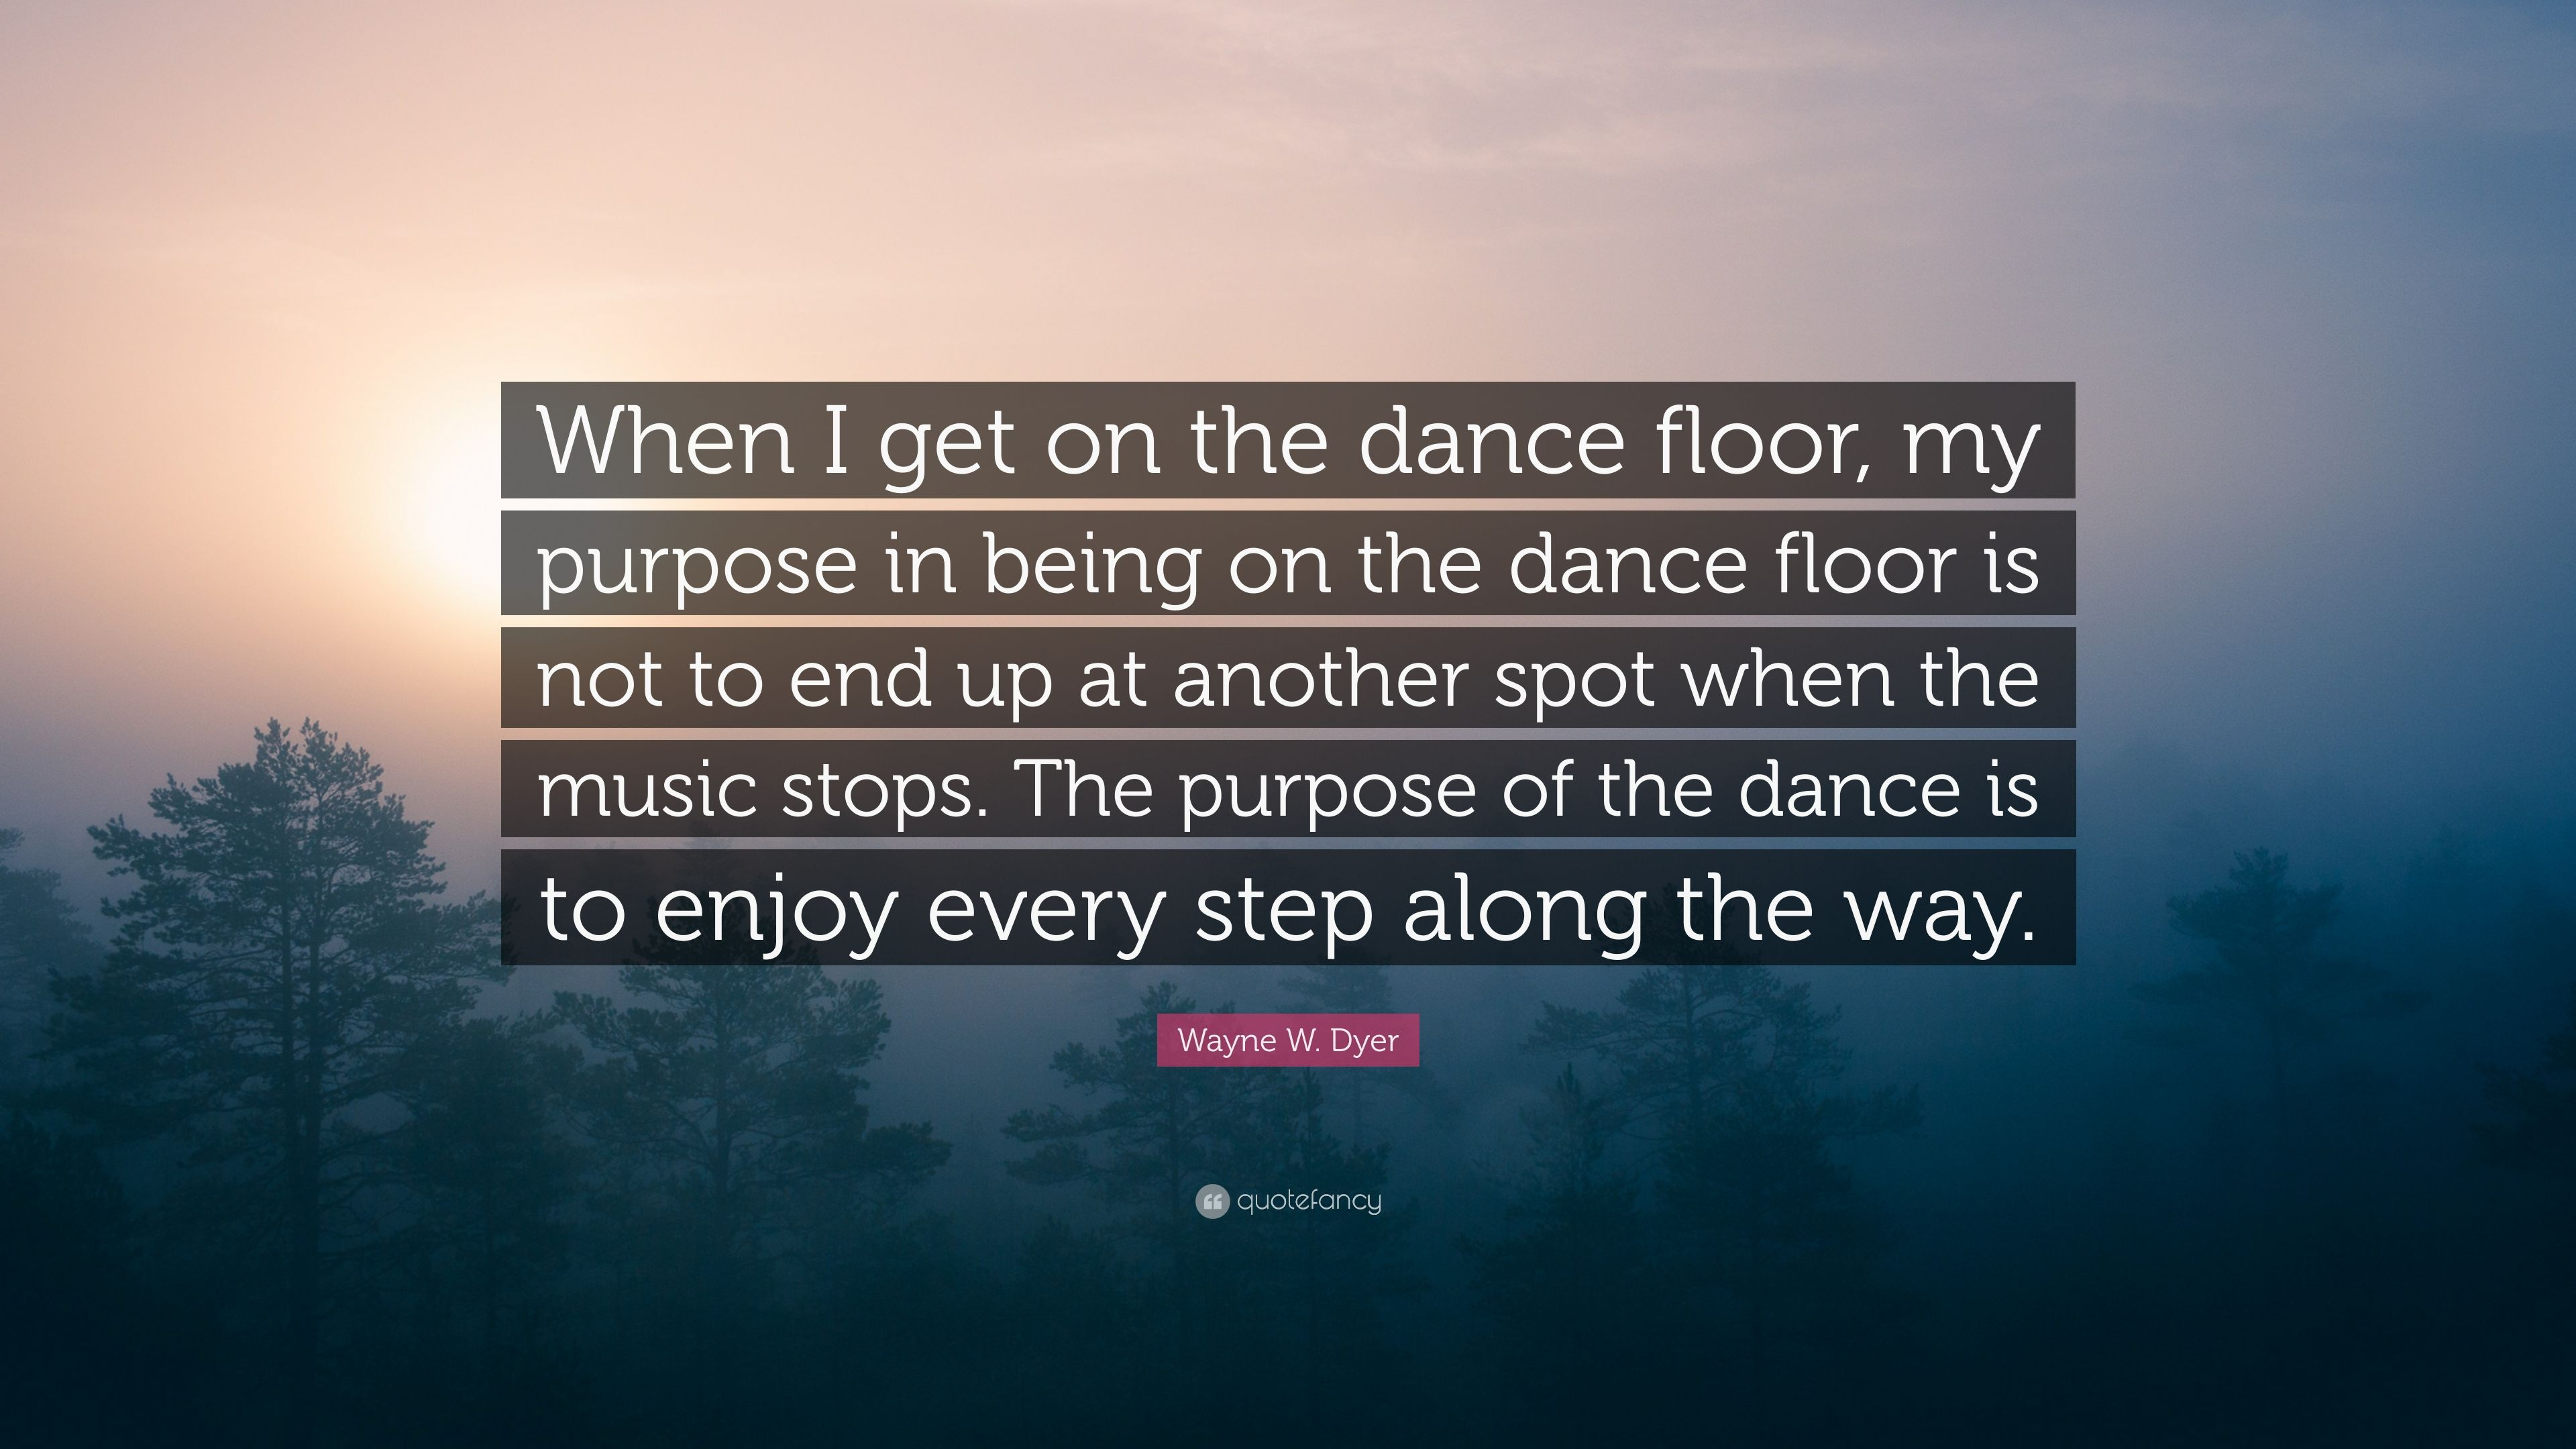 Wayne W Dyer Quote When I Get On The Dance Floor My Purpose In